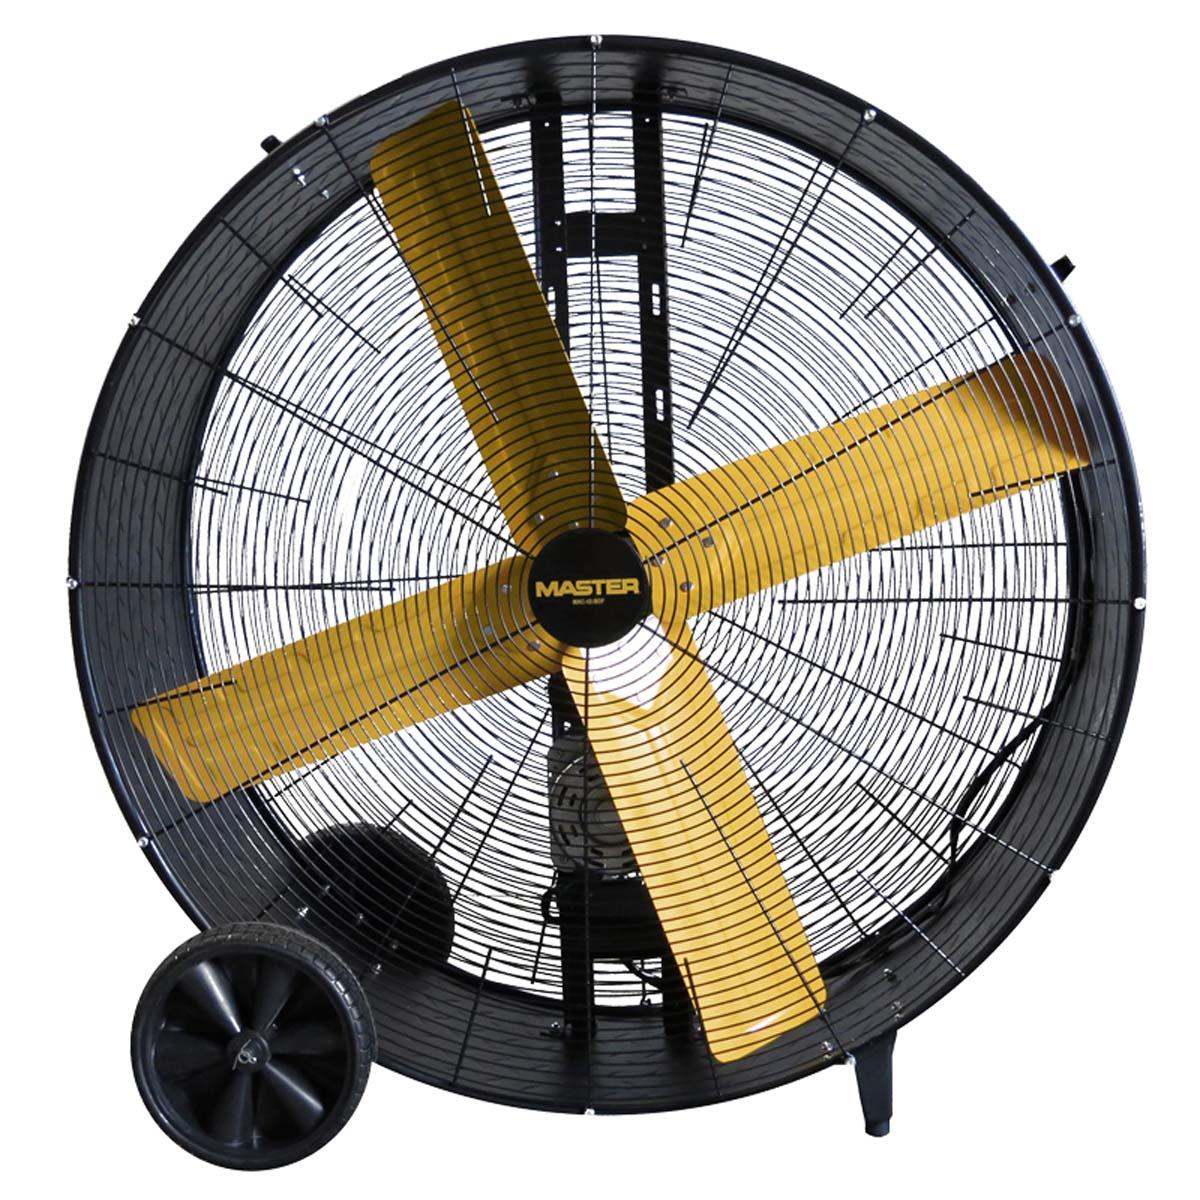 "MASTER 42"" High Capacity Belt Drive Drum Fan"